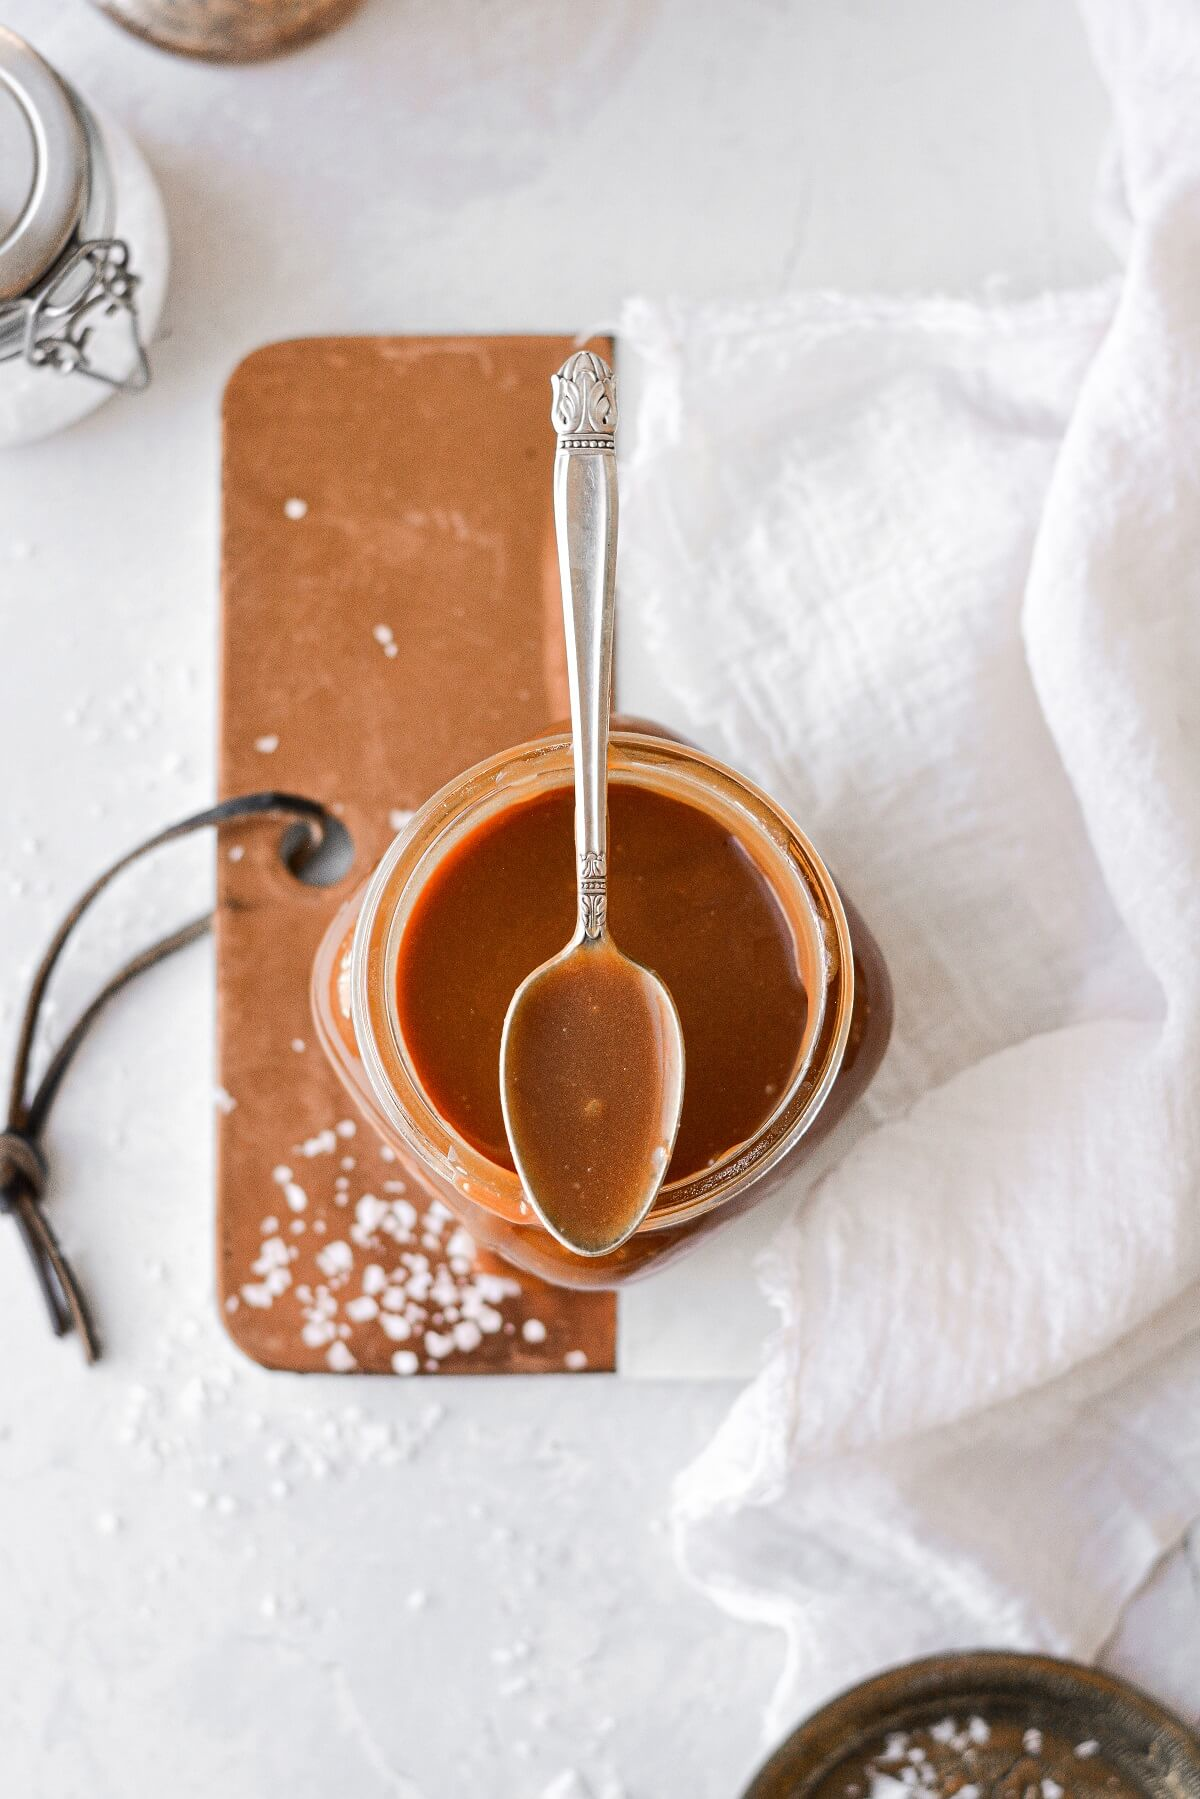 A jar of salted caramel sauce with a spoon resting on top.